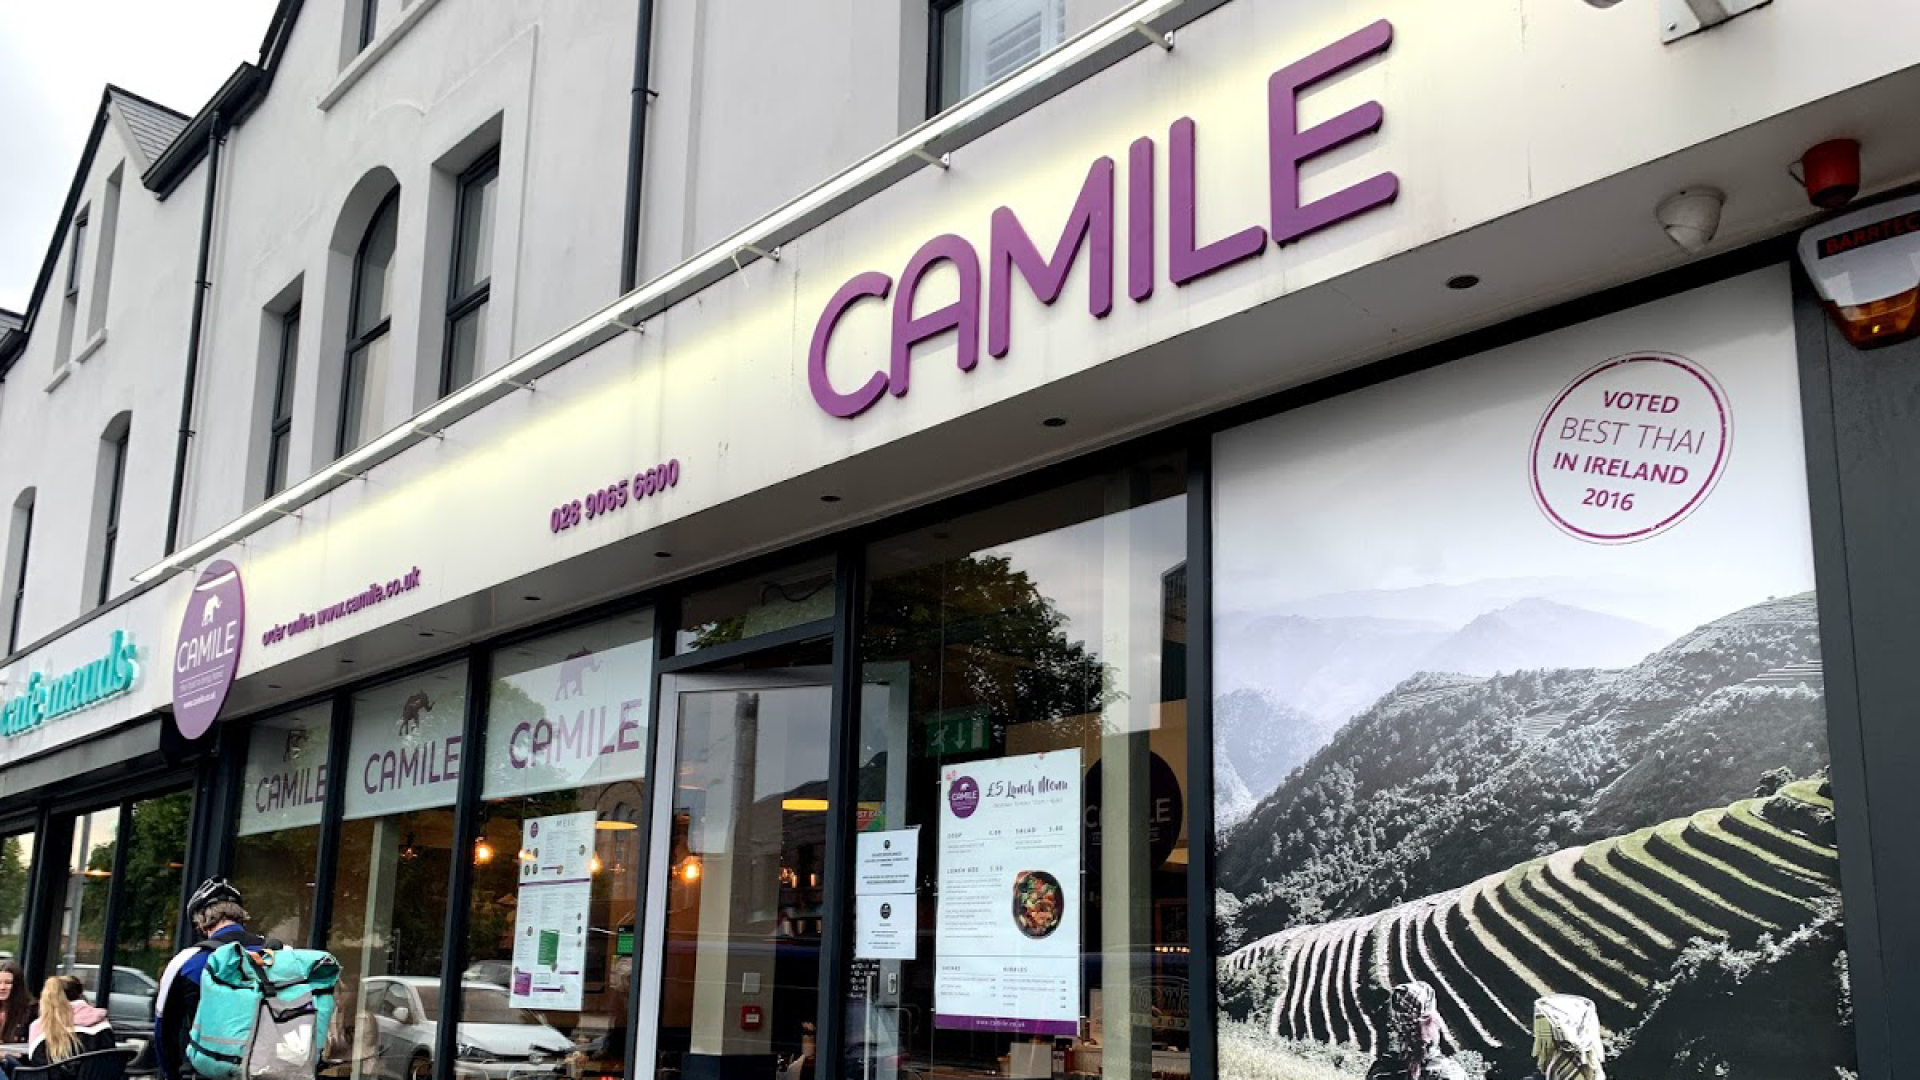 Camile Multi-Unit franchisee opens 8th outlet in Bangor, N. Ireland